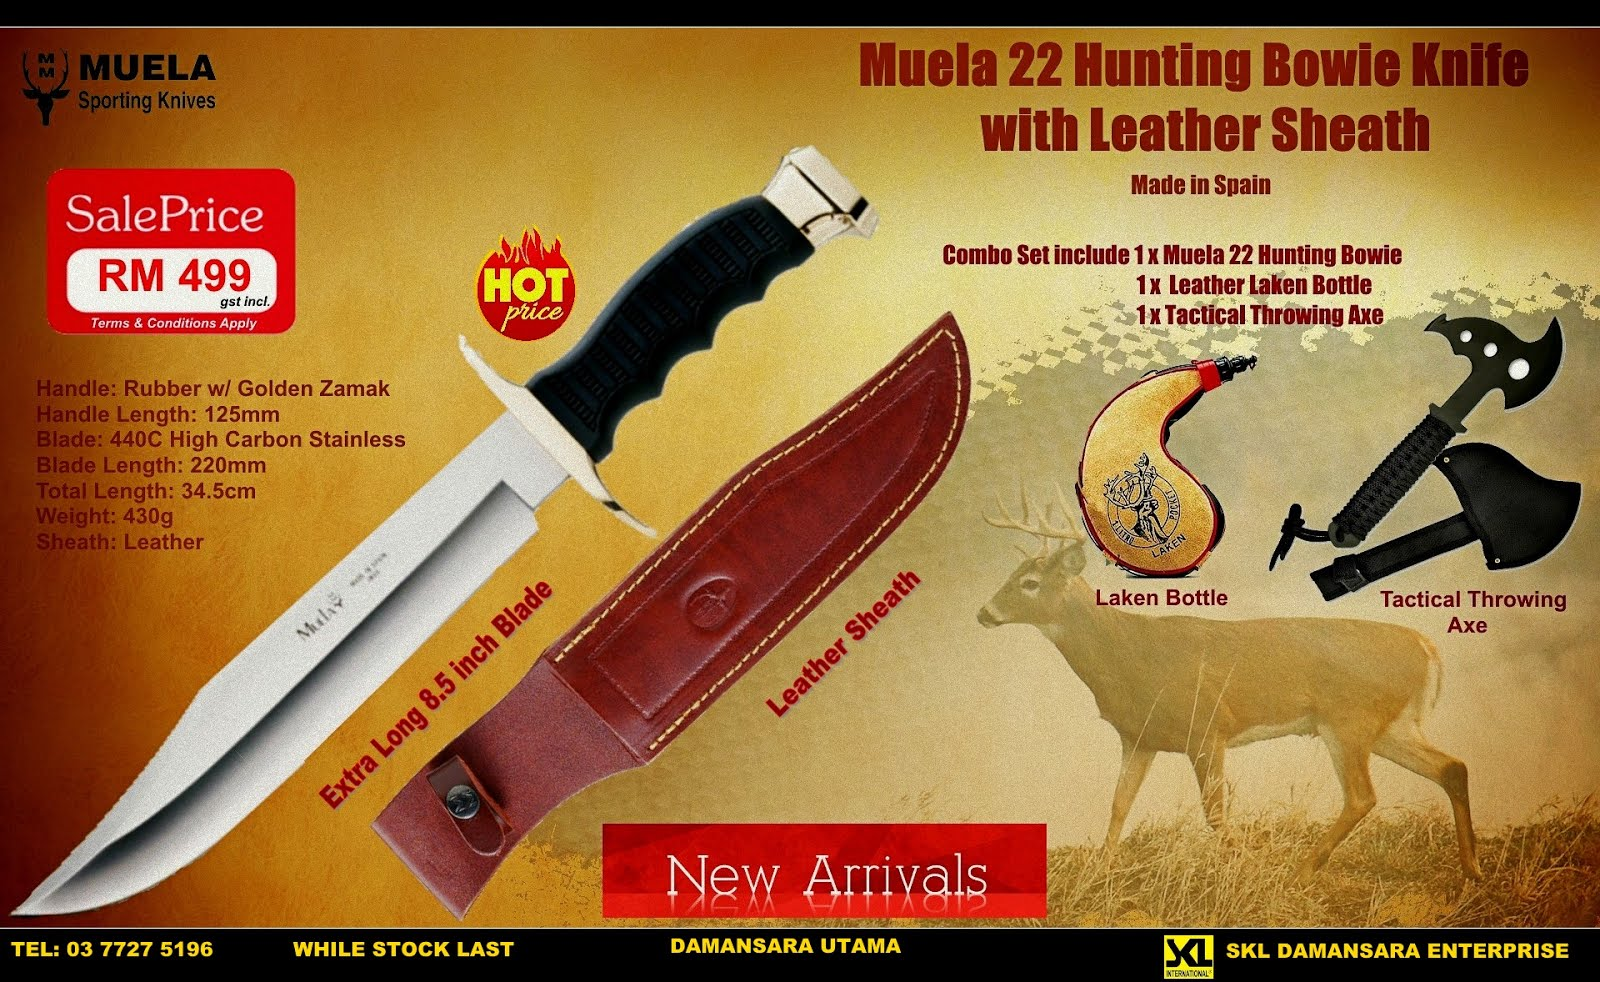 Muela 22 Extra Large Hunting Bowie Knife 8.5 inch Blade